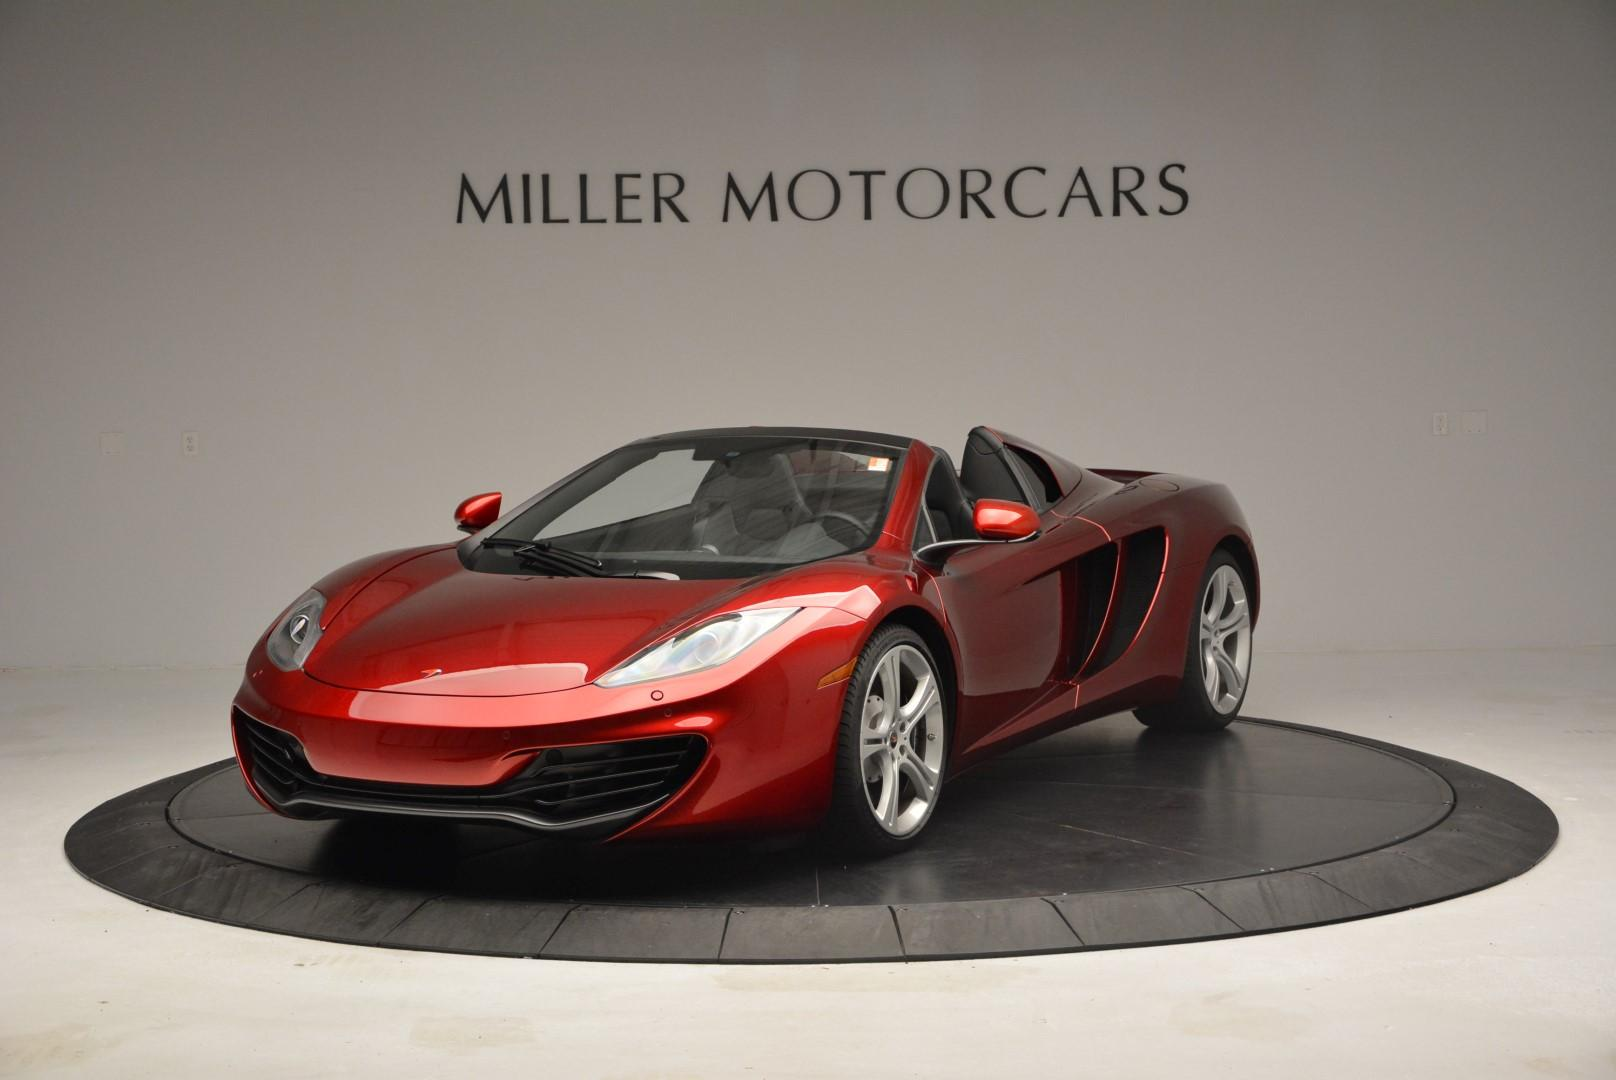 Used 2013 McLaren 12C Spider for sale Sold at Bugatti of Greenwich in Greenwich CT 06830 1